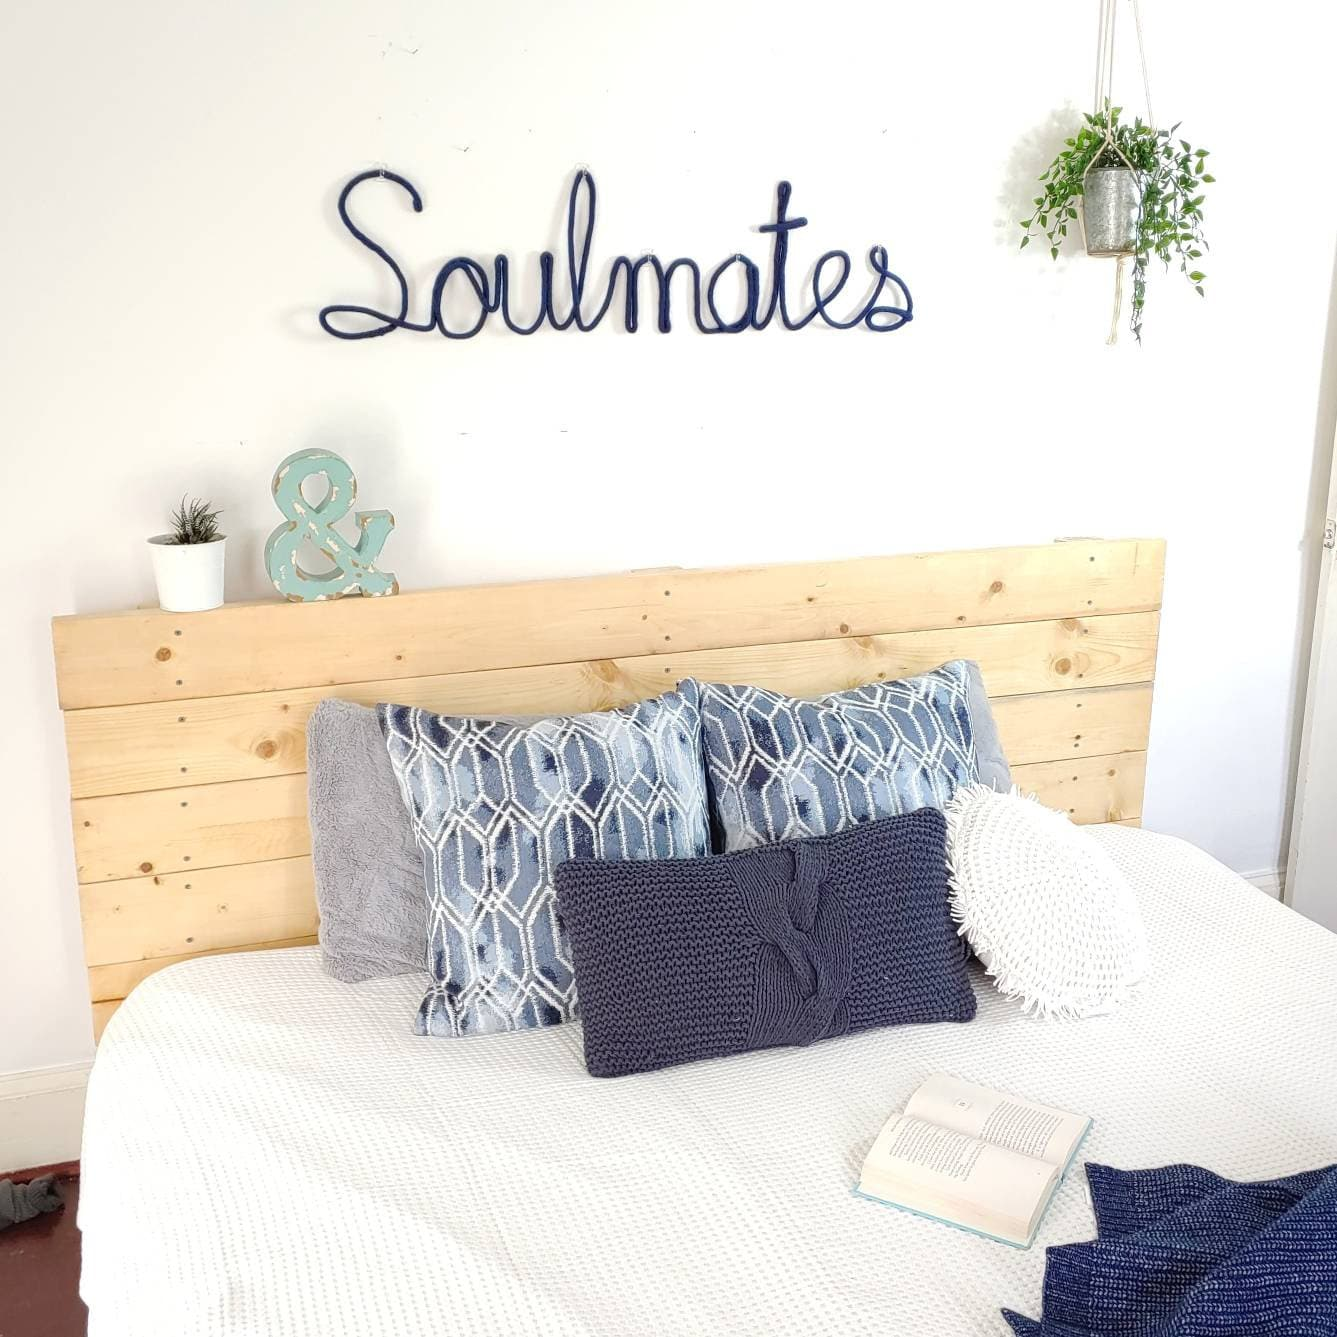 Soulmates Sign Bedroom Sign Bedroom Decor Above Bed Decor Master Bedroom Decor Wire Word Wall Art Bedroom Art Bedroom Wall Decor